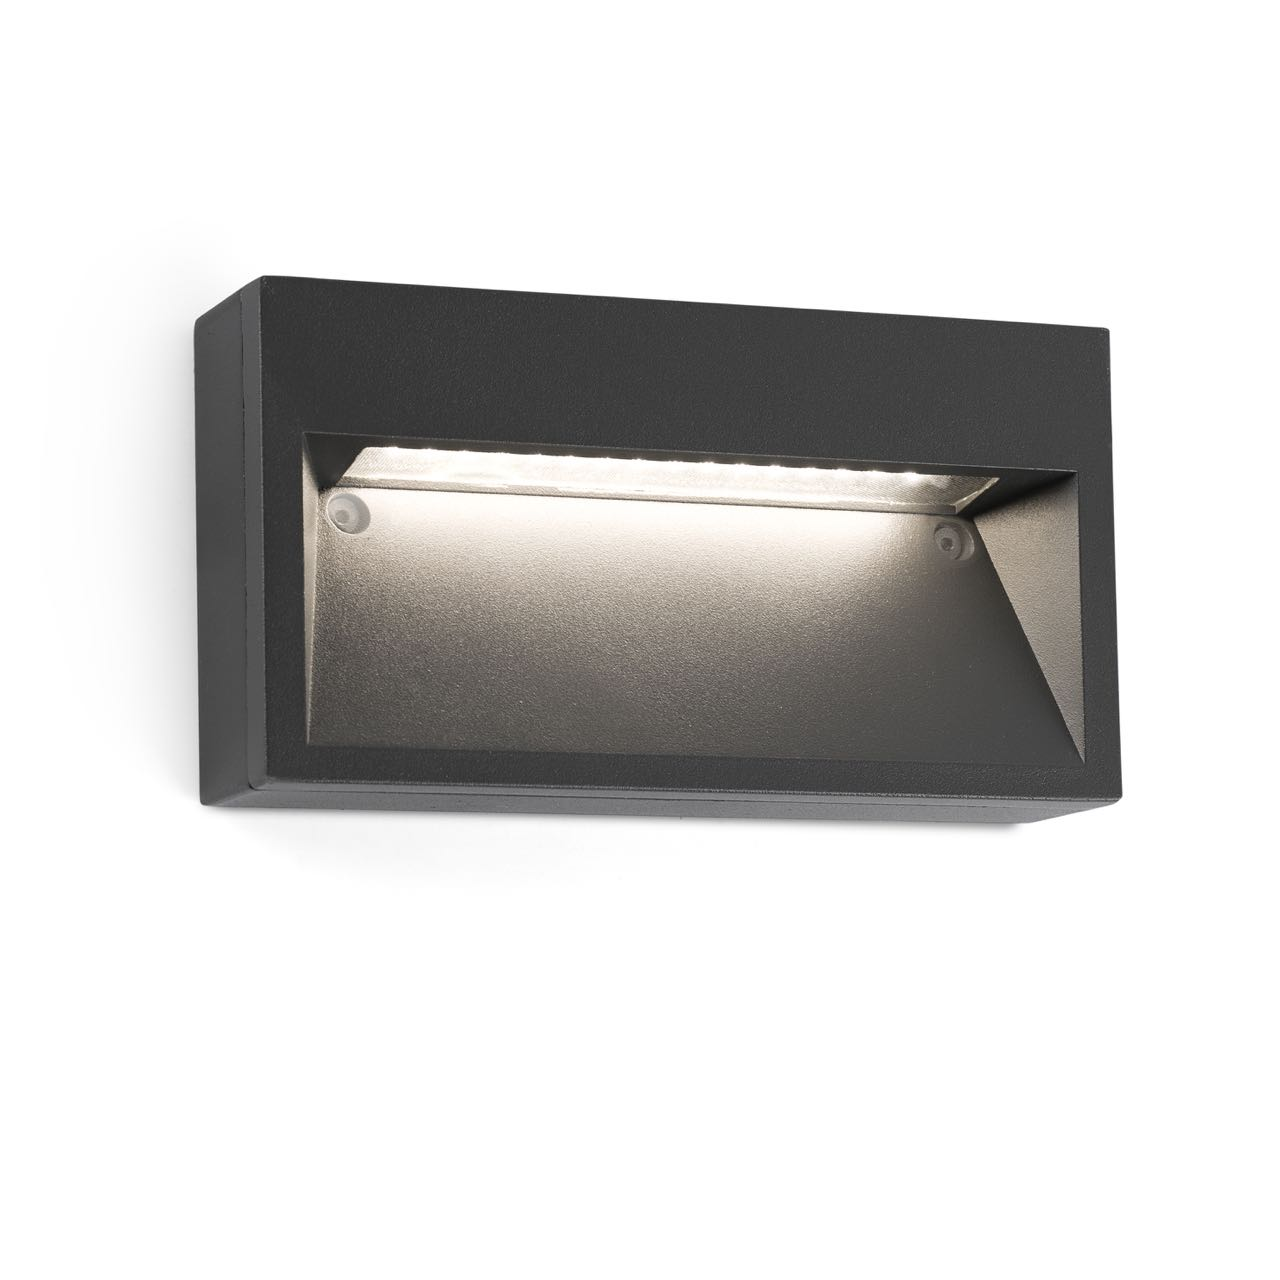 Comprar aplique de pared para jard n con led path de faro - Aplique de pared exterior ...